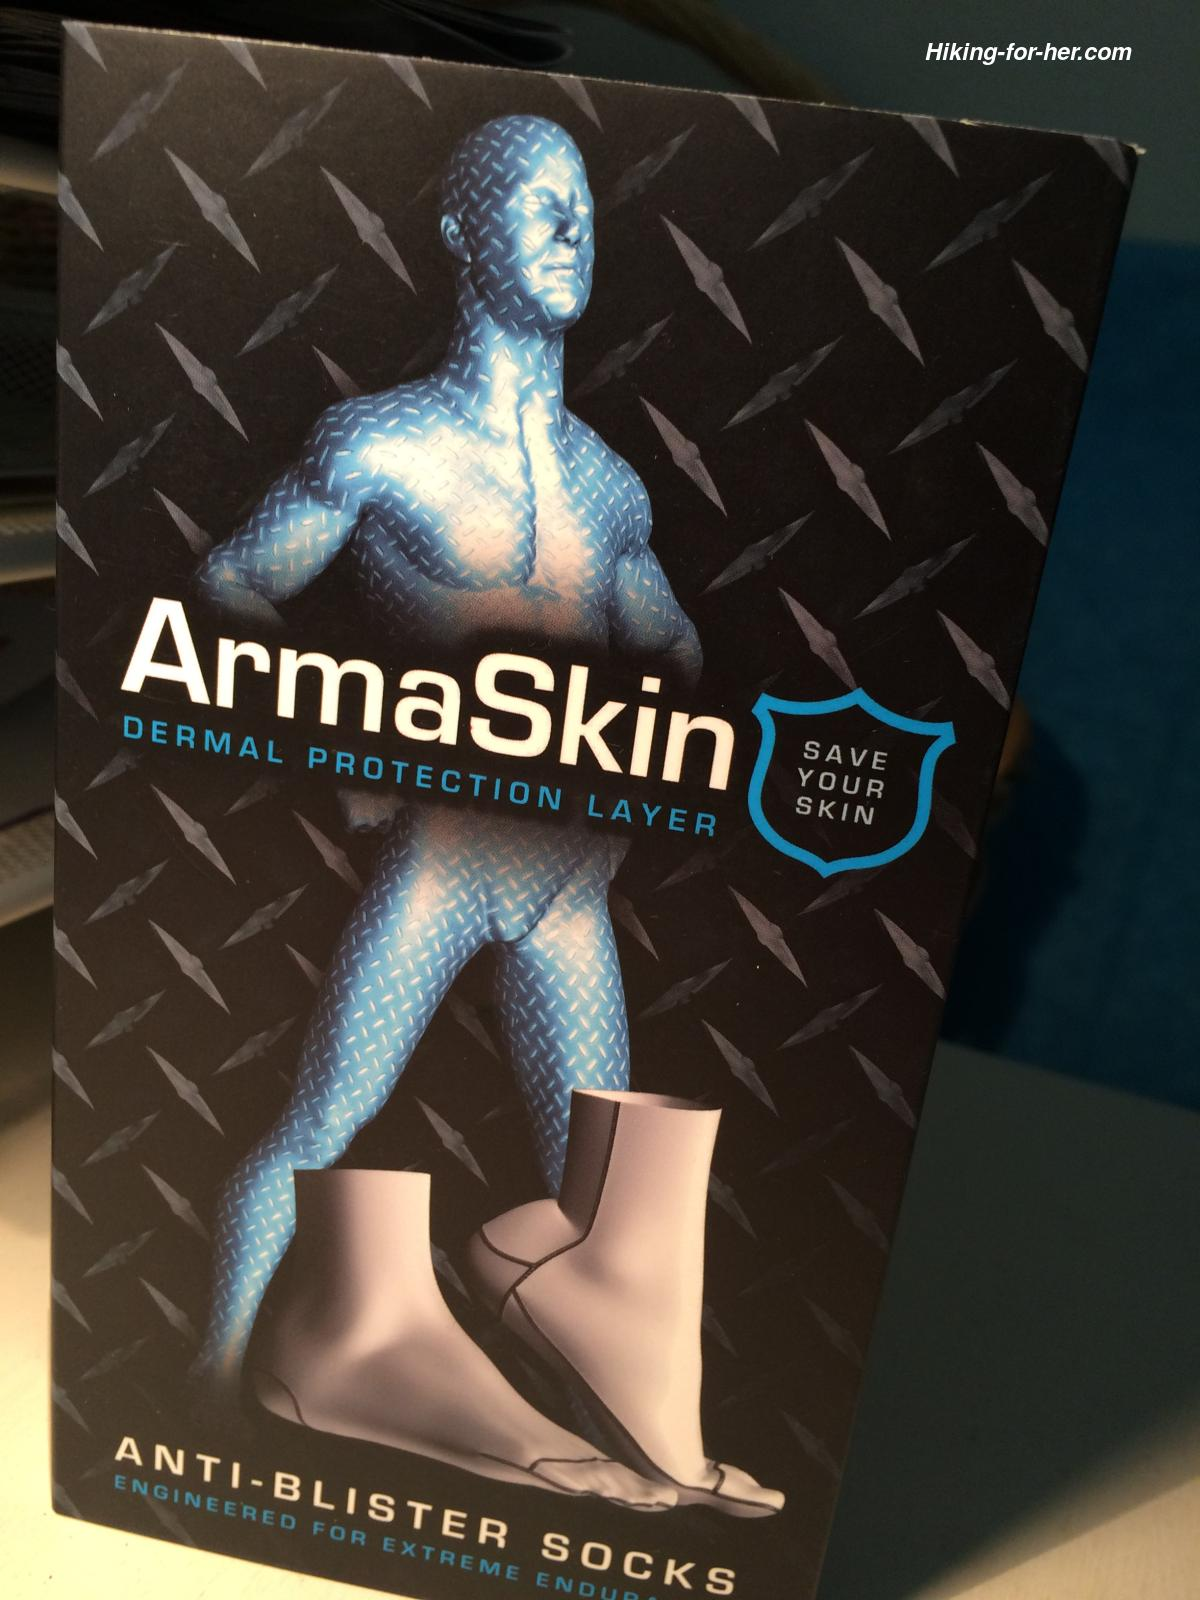 Armaskin Anti-blister Sock packaging